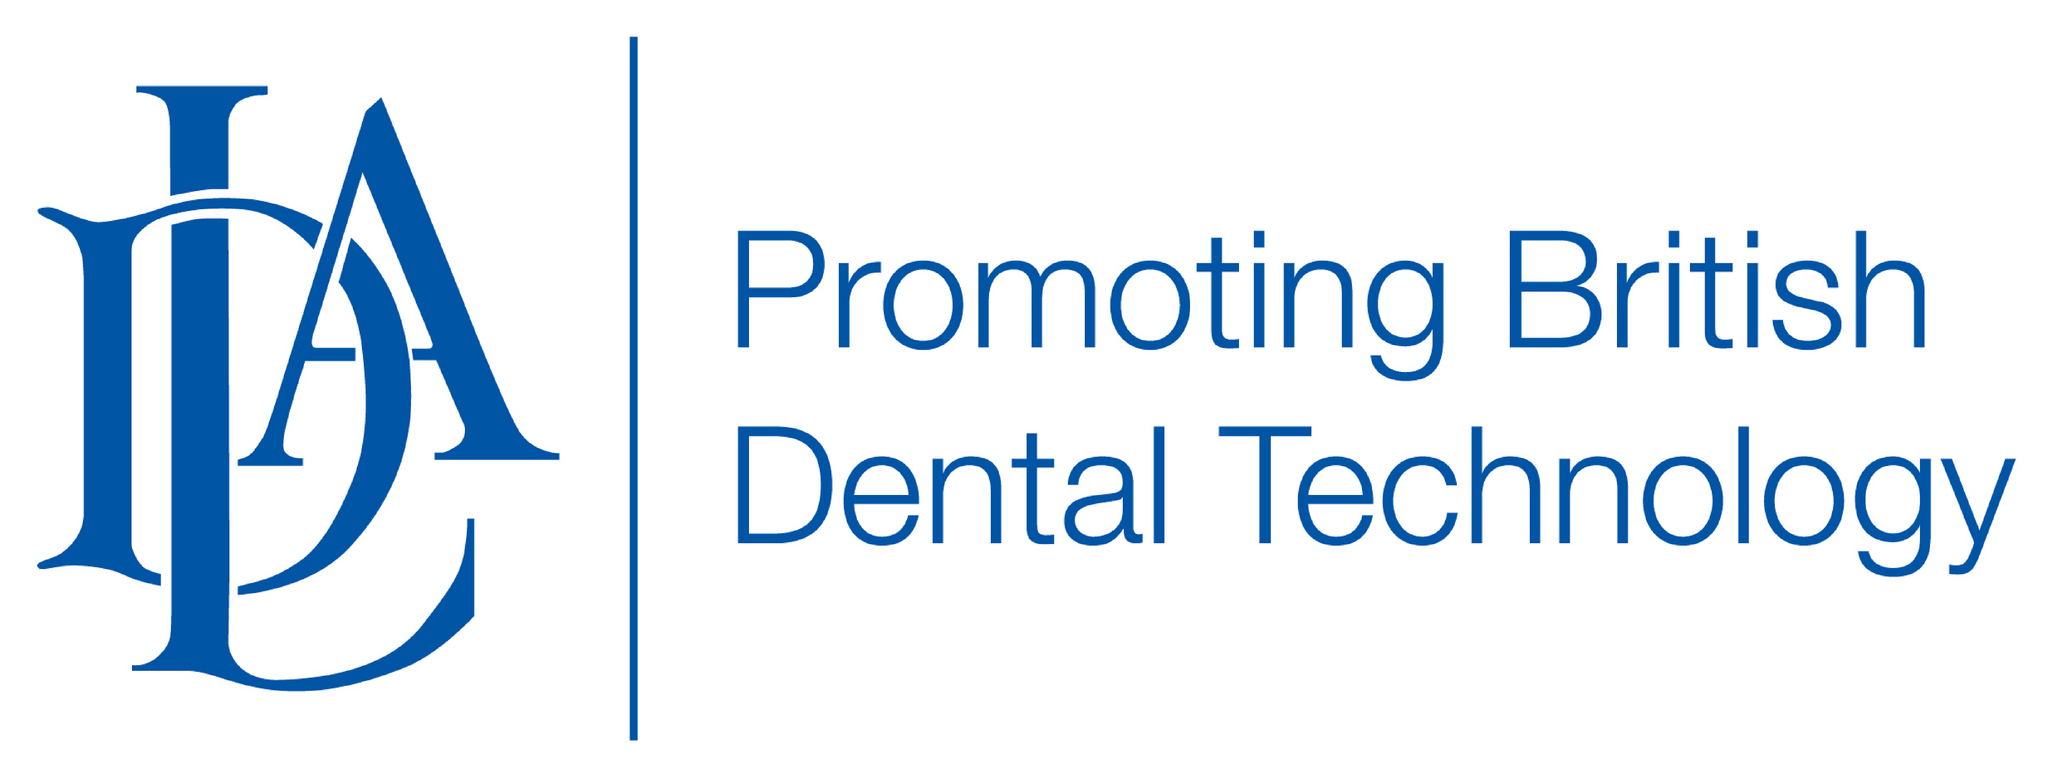 Dental Laboratories Association